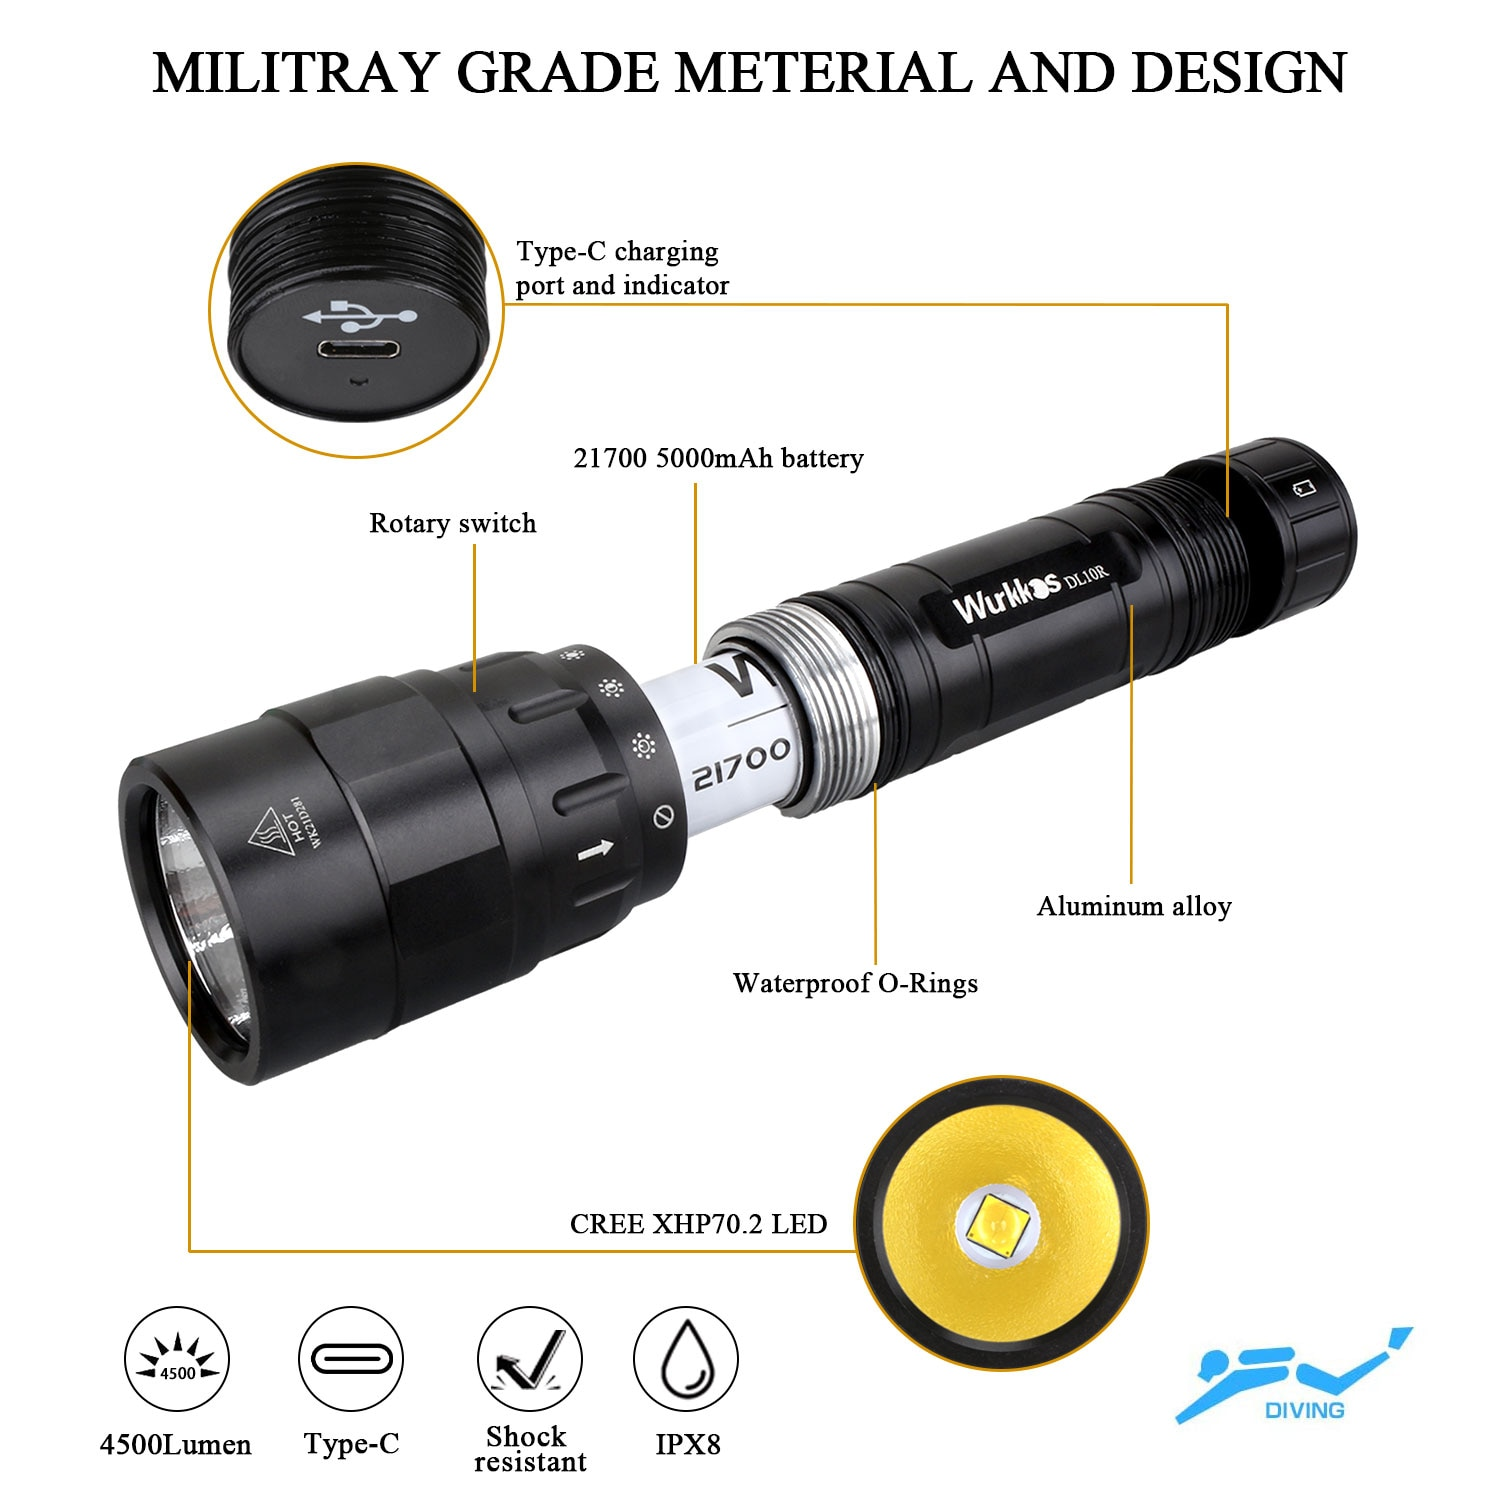 Wurkkos DL10R Scuba Diving Flashlight Cree XHP70.2 LED Flashlights 4500lm 21700 USB-C Rechargeable Torch with Magnetic Control enlarge